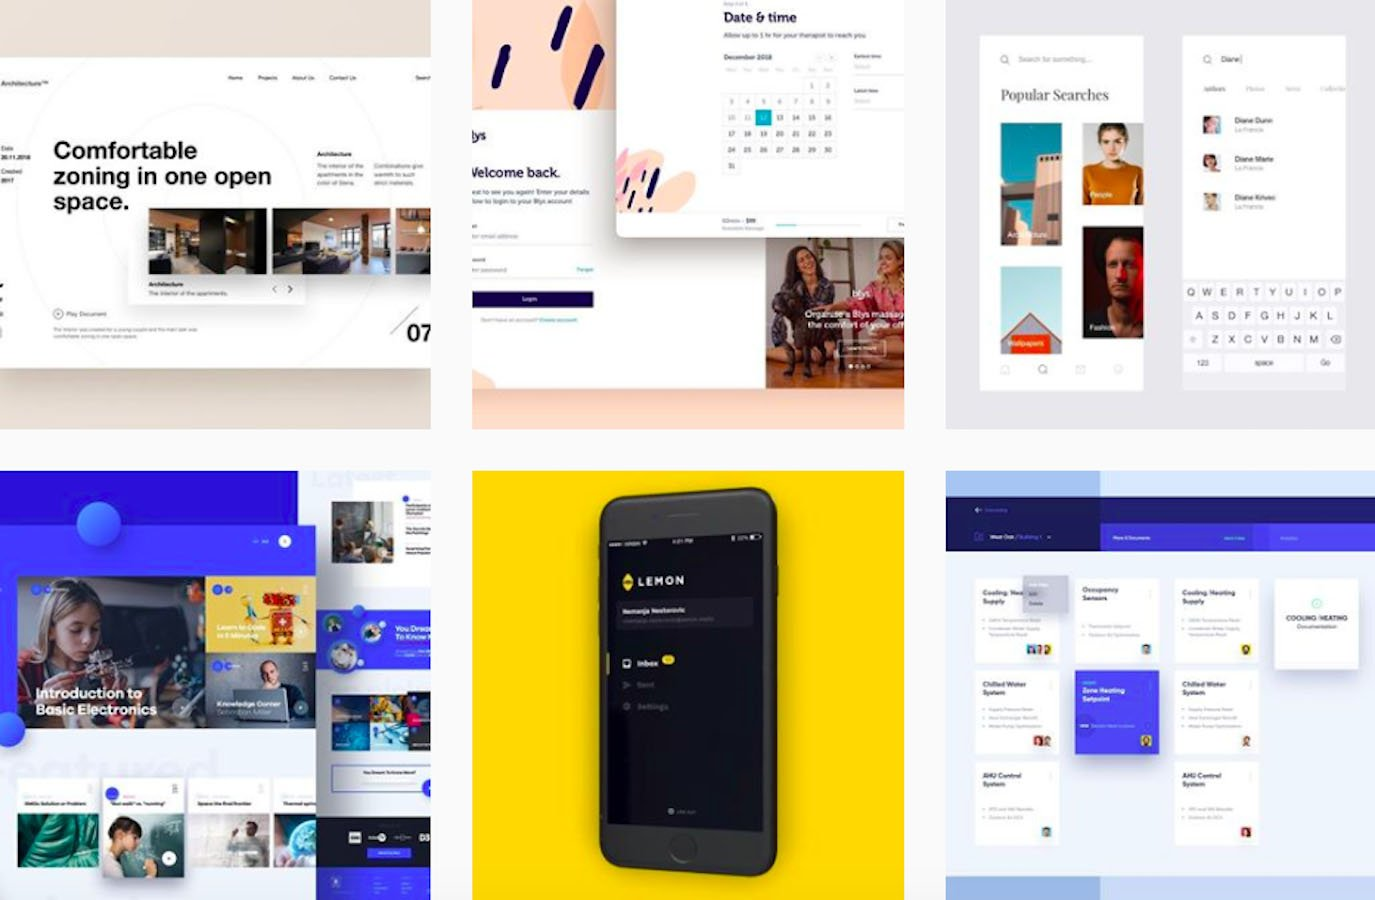 Web Design Inspiration: 110+ Accounts On Instagram and 10+ Best UX & Web Design Books in 2020 - interfacelab